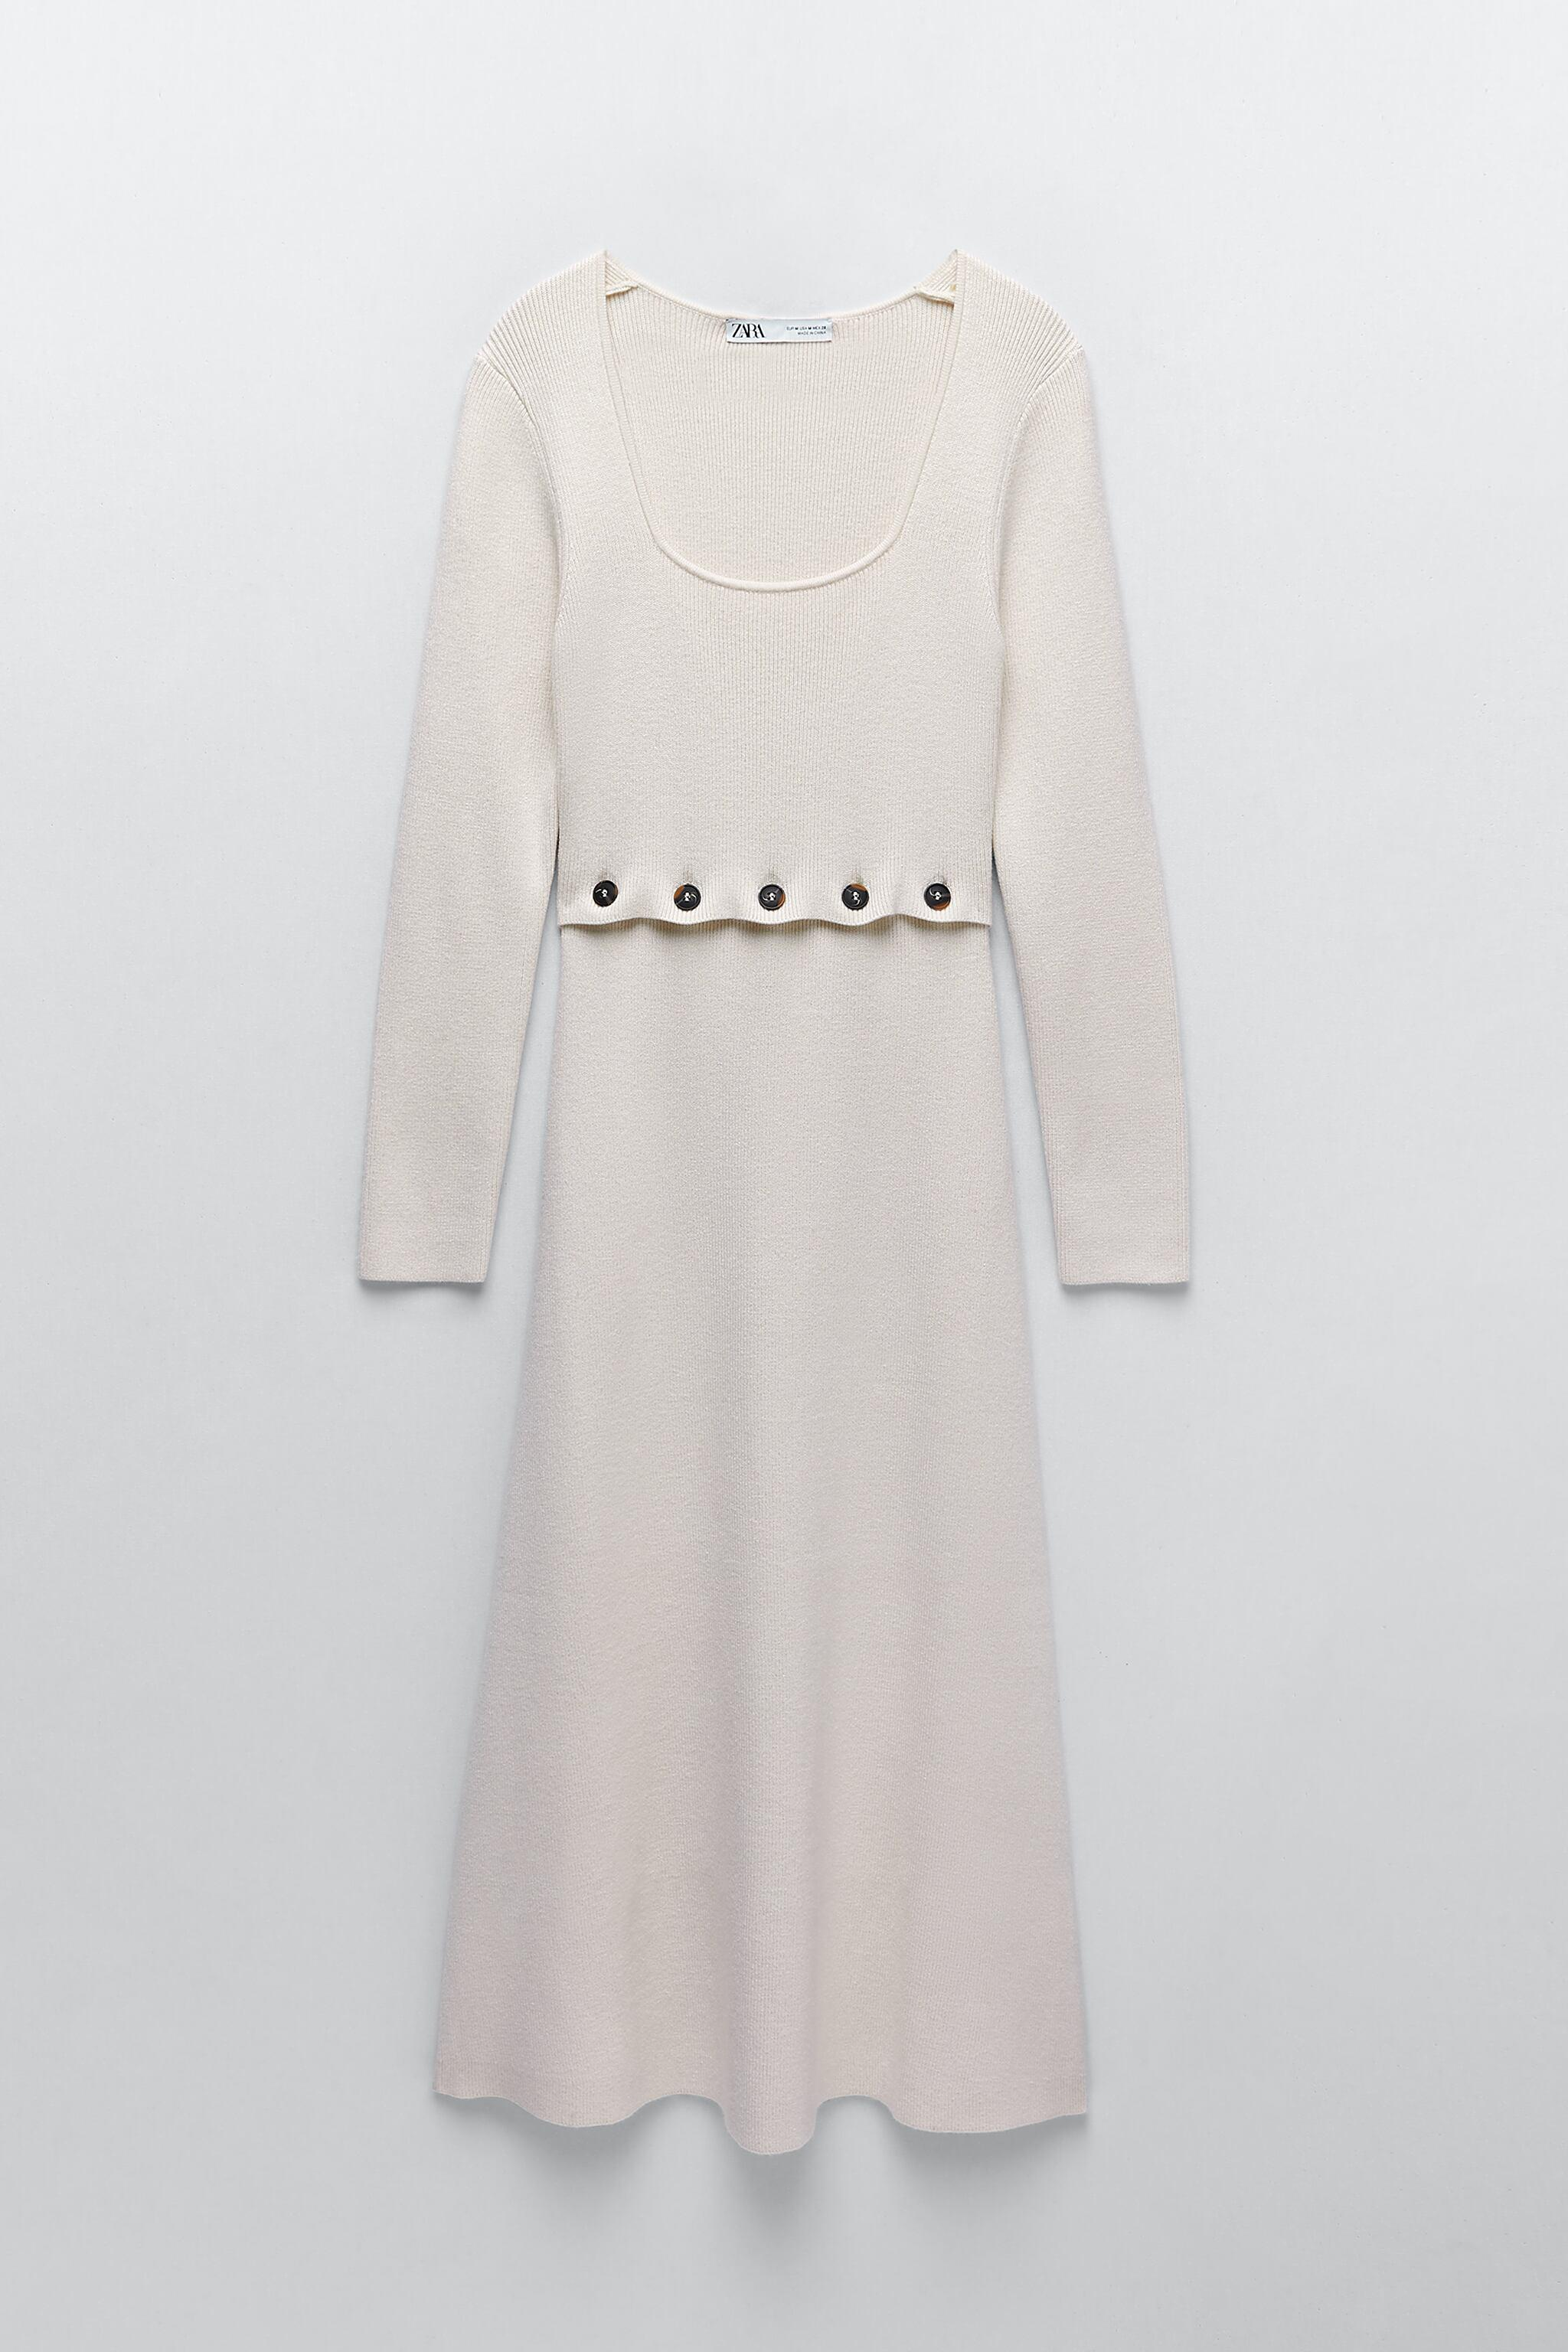 KNIT DRESS WITH BUTTONS 4